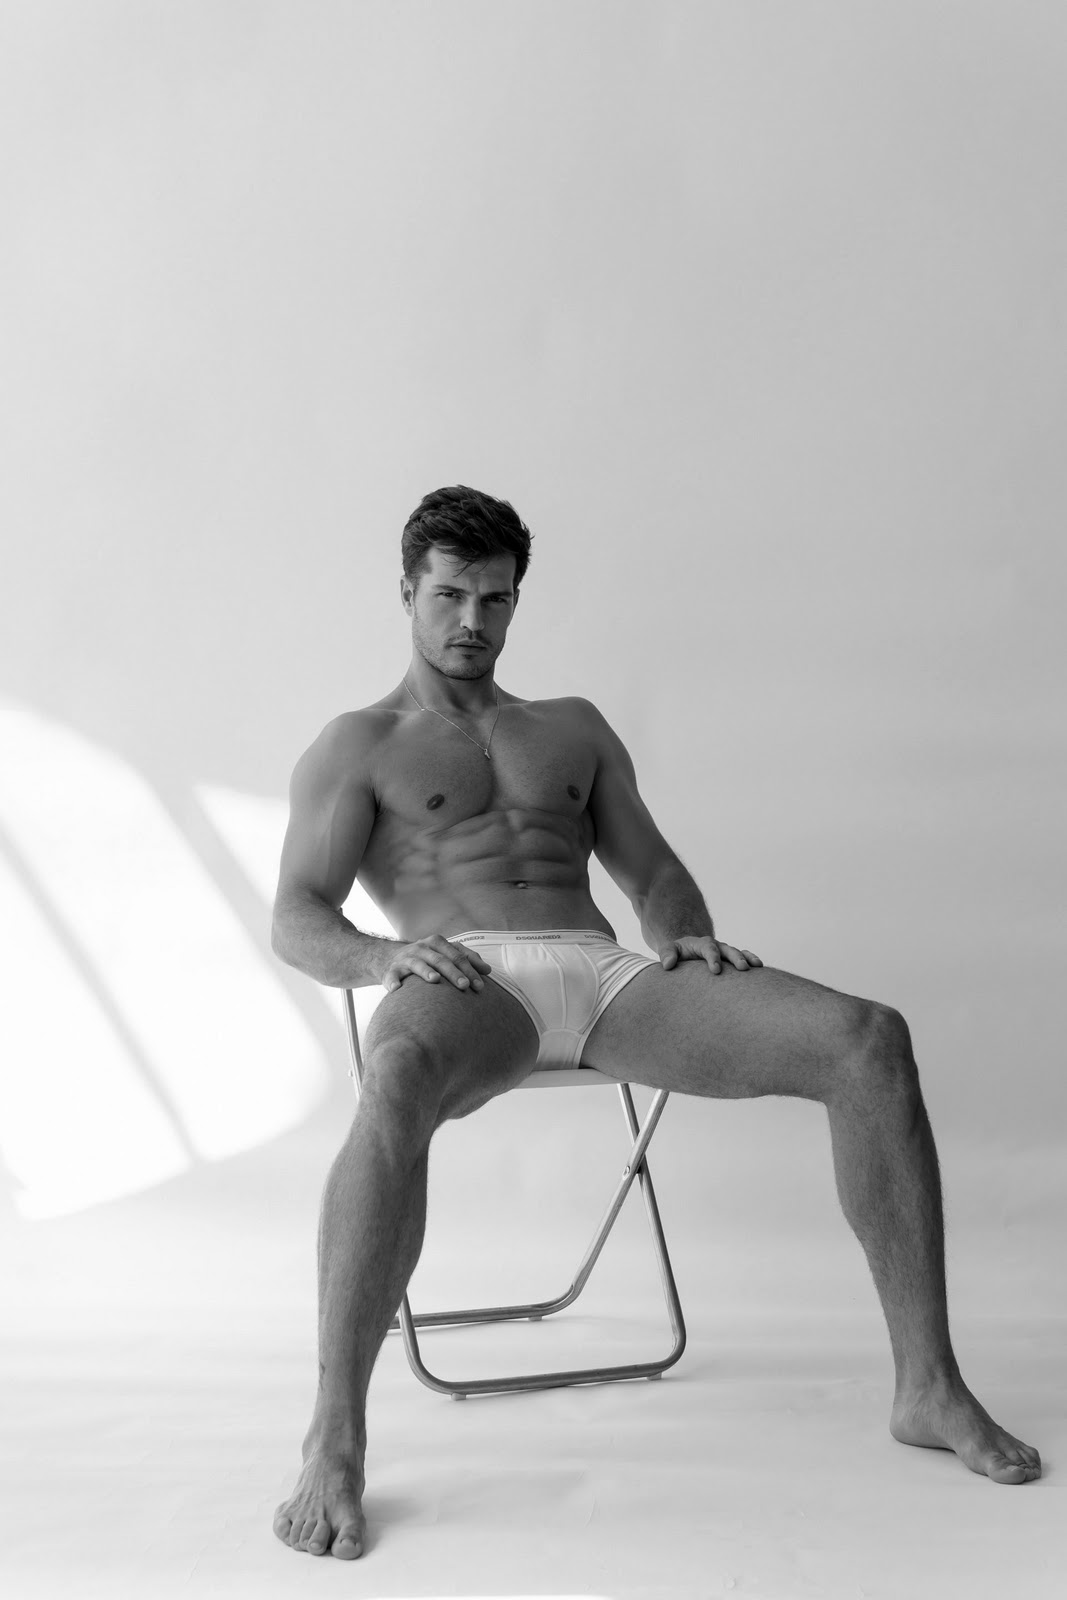 DiegO, by Pedro Pedreira ft Diego Miguel for Made in Brazil Magazine.